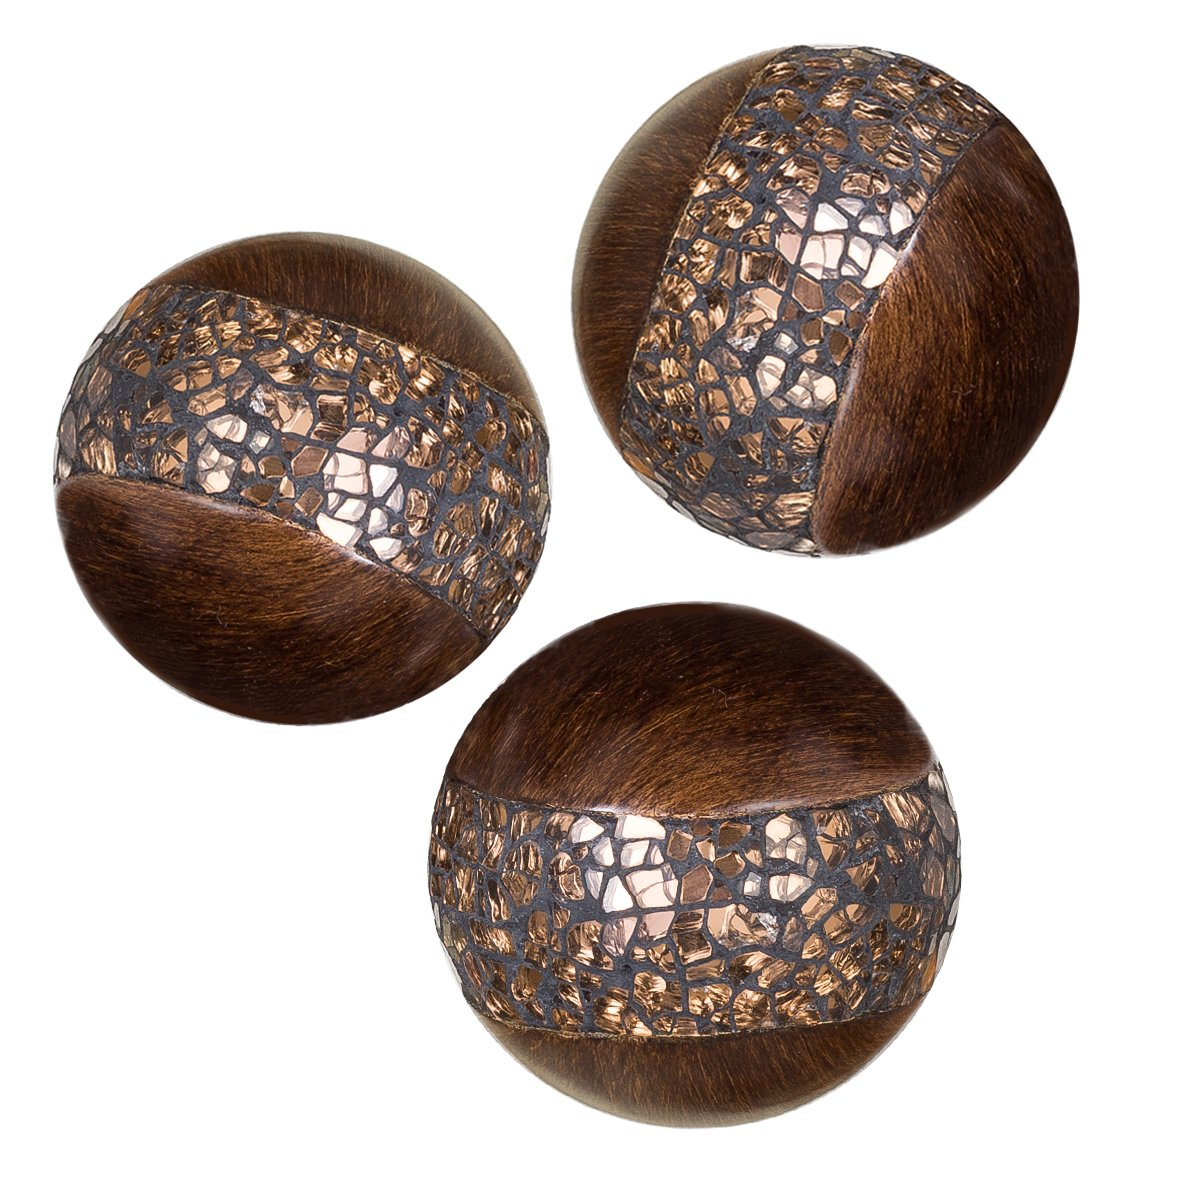 decorative balls for bowls Best decorative balls for bowls | Amazon.com decorative balls for bowls